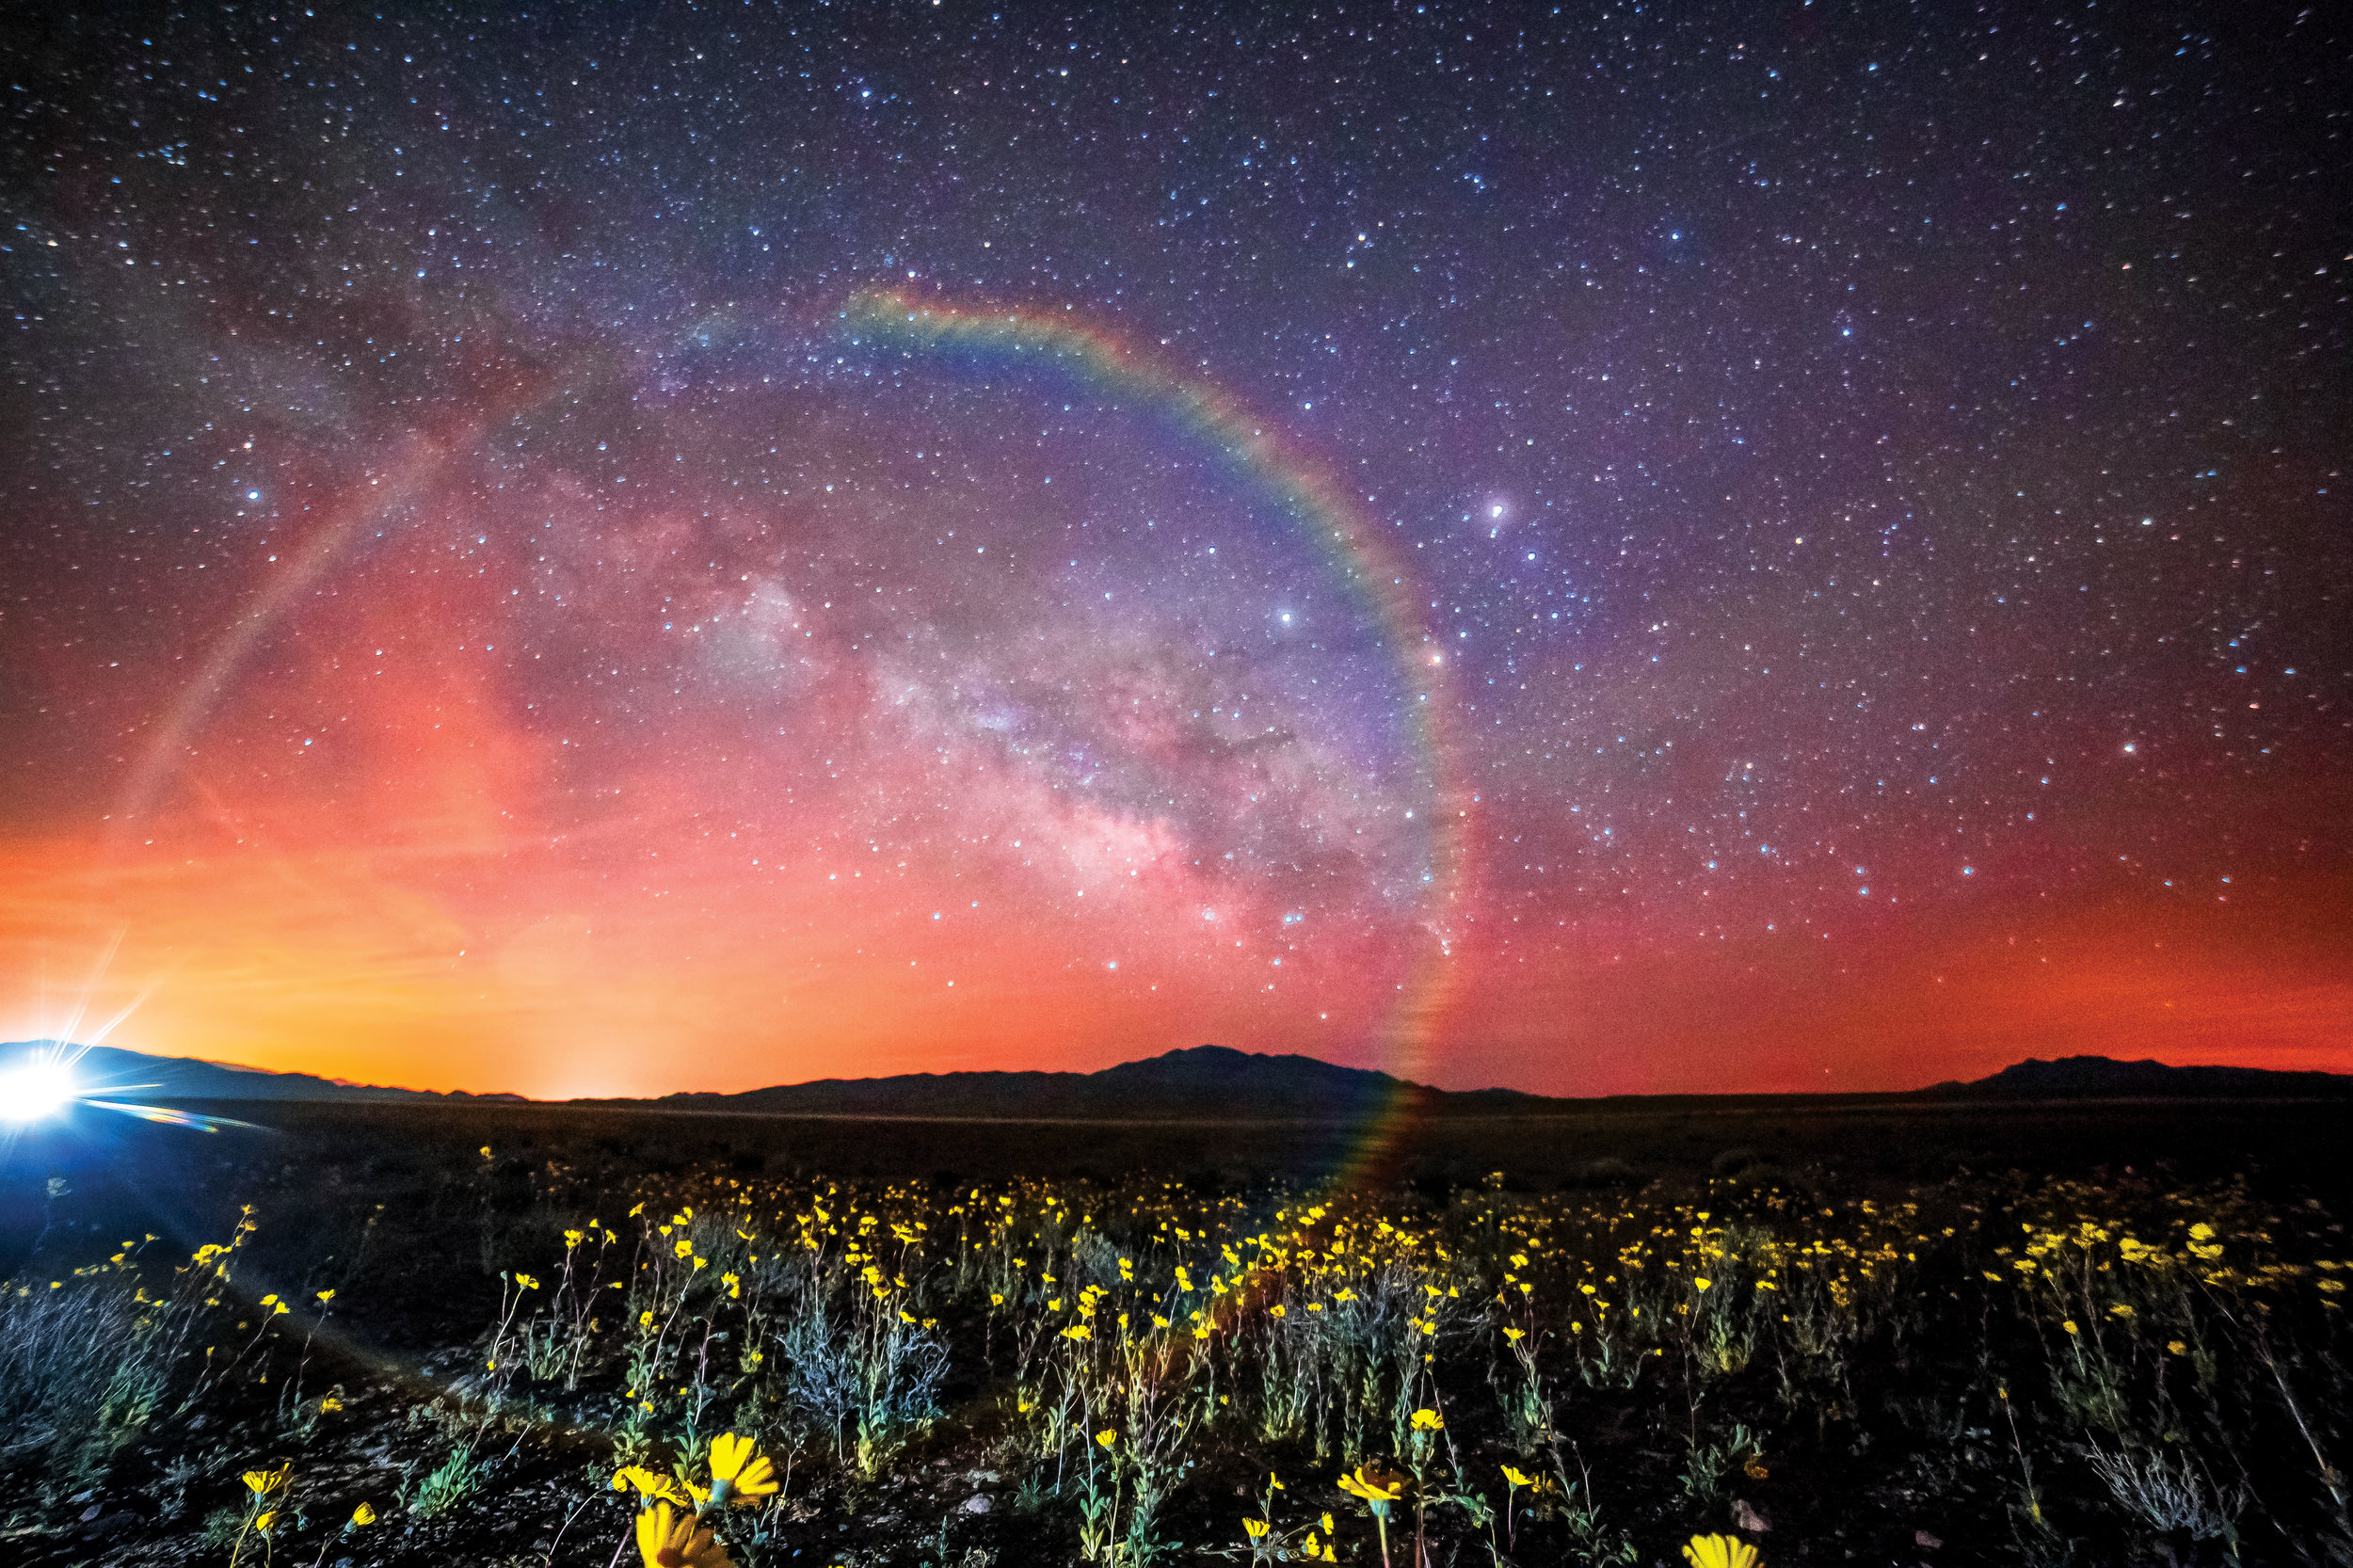 Breathtaking photography series showcases beauty of night sky in areas with no light pollution